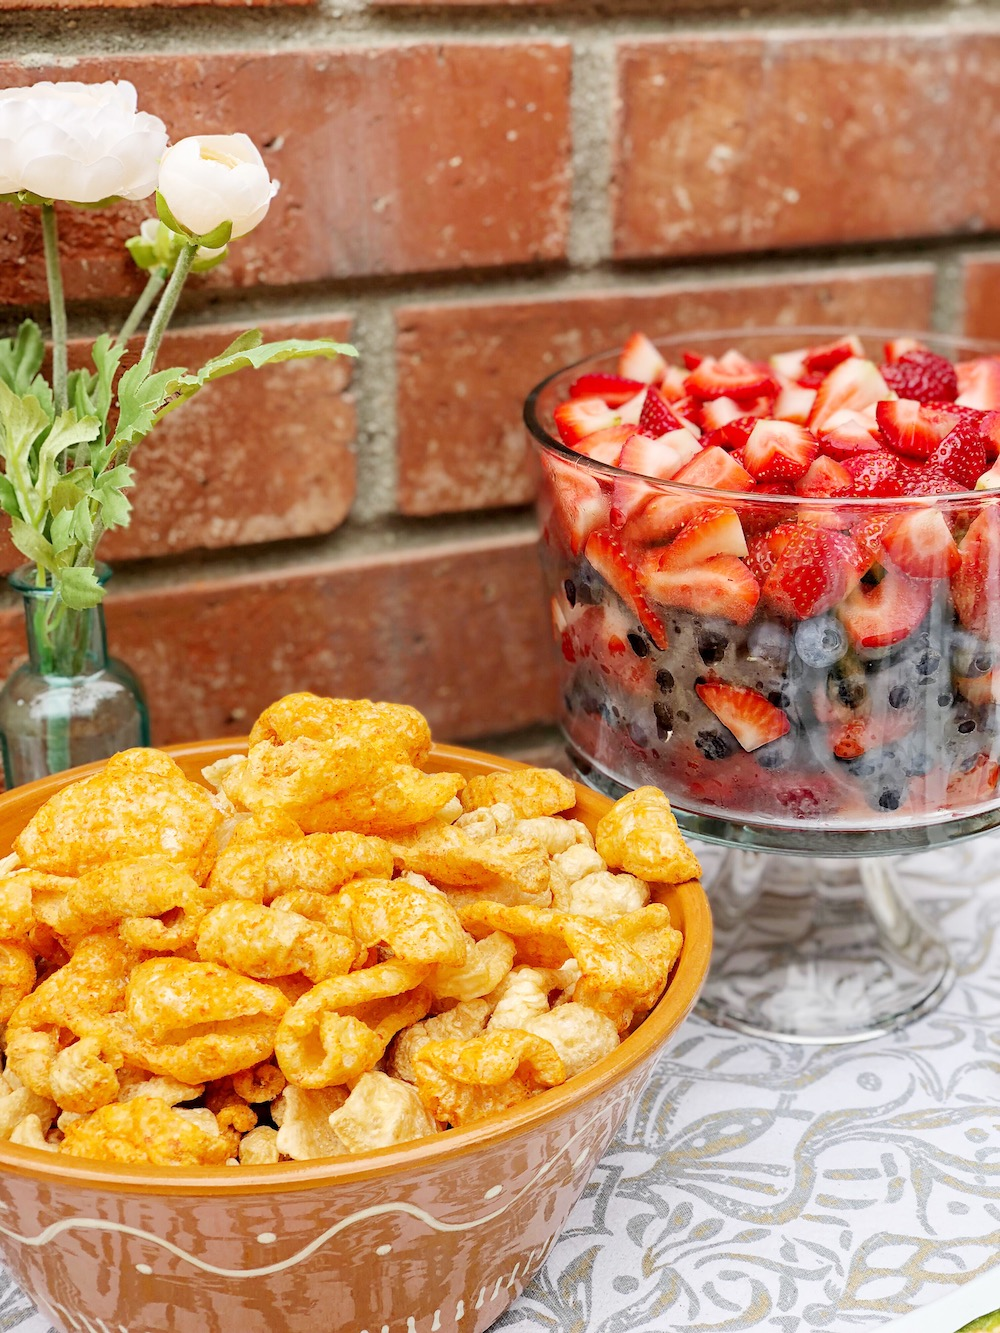 Best keto snacks for a party include chicharrones and a fruit salad - livingmividaloca.com